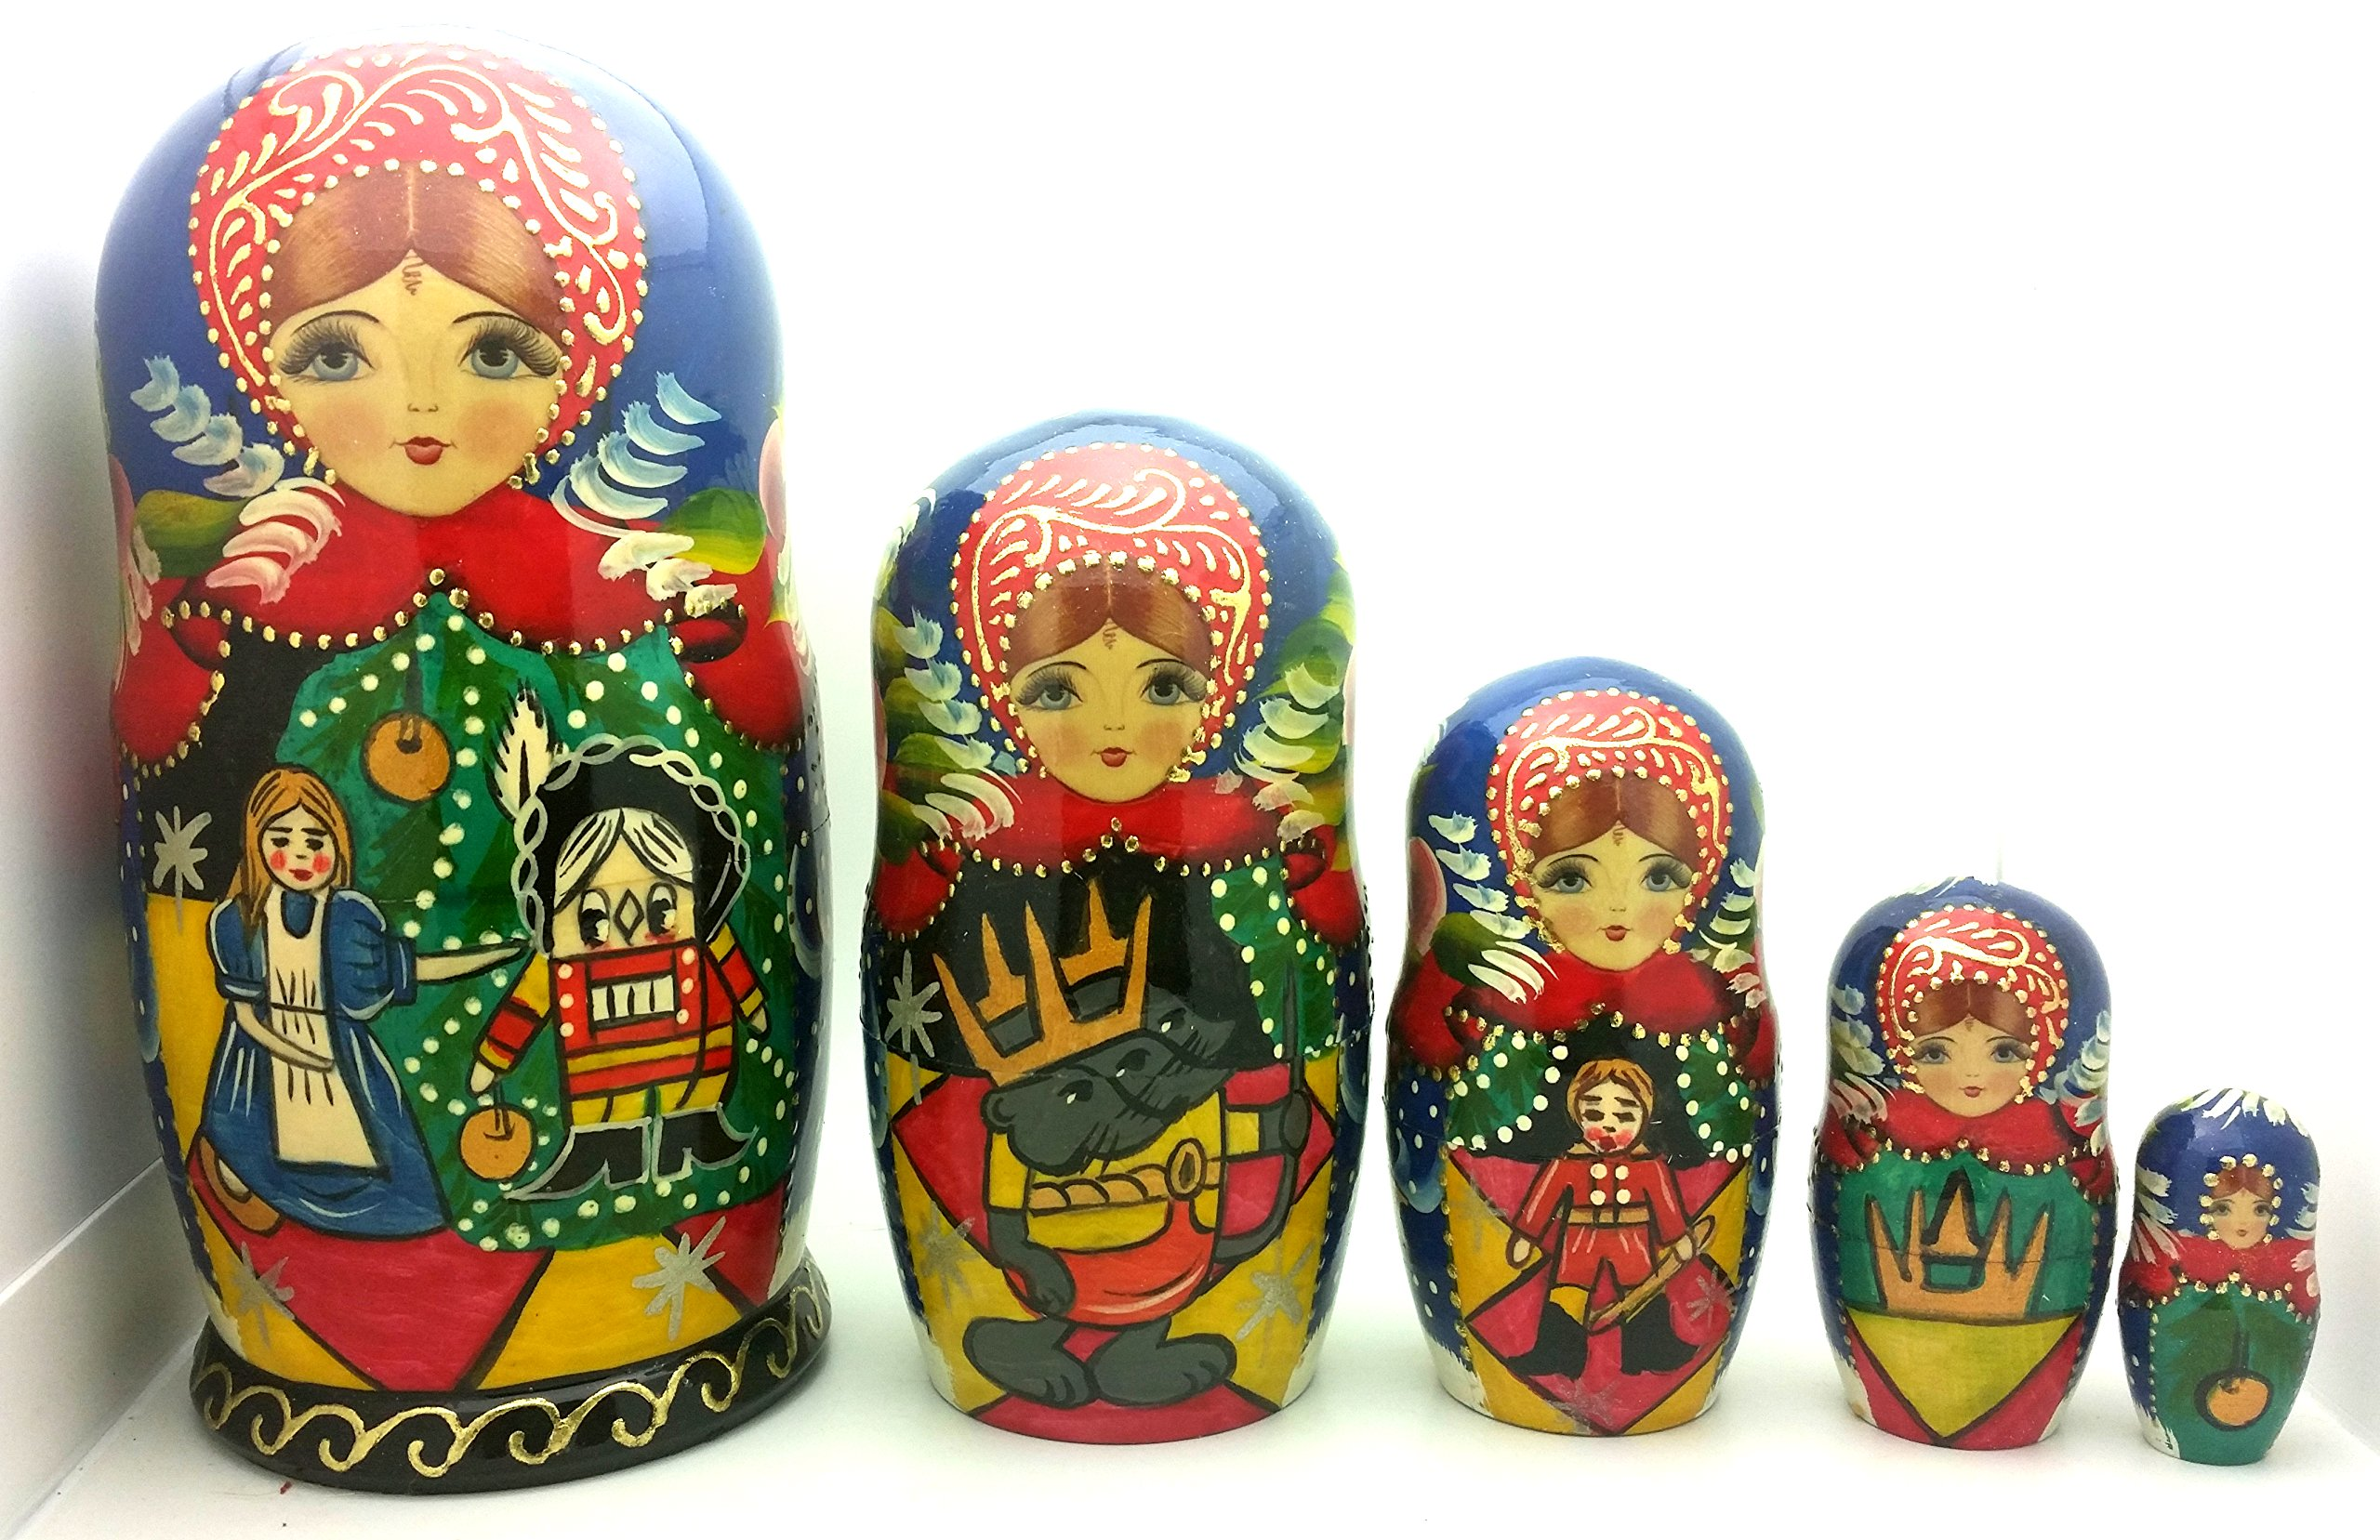 Nutcracker fairy tale Russian Hand Carved Hand Painted Nesting 5 piece DOLL Set 7'' tall / ballet by BuyRussianGifts (Image #2)